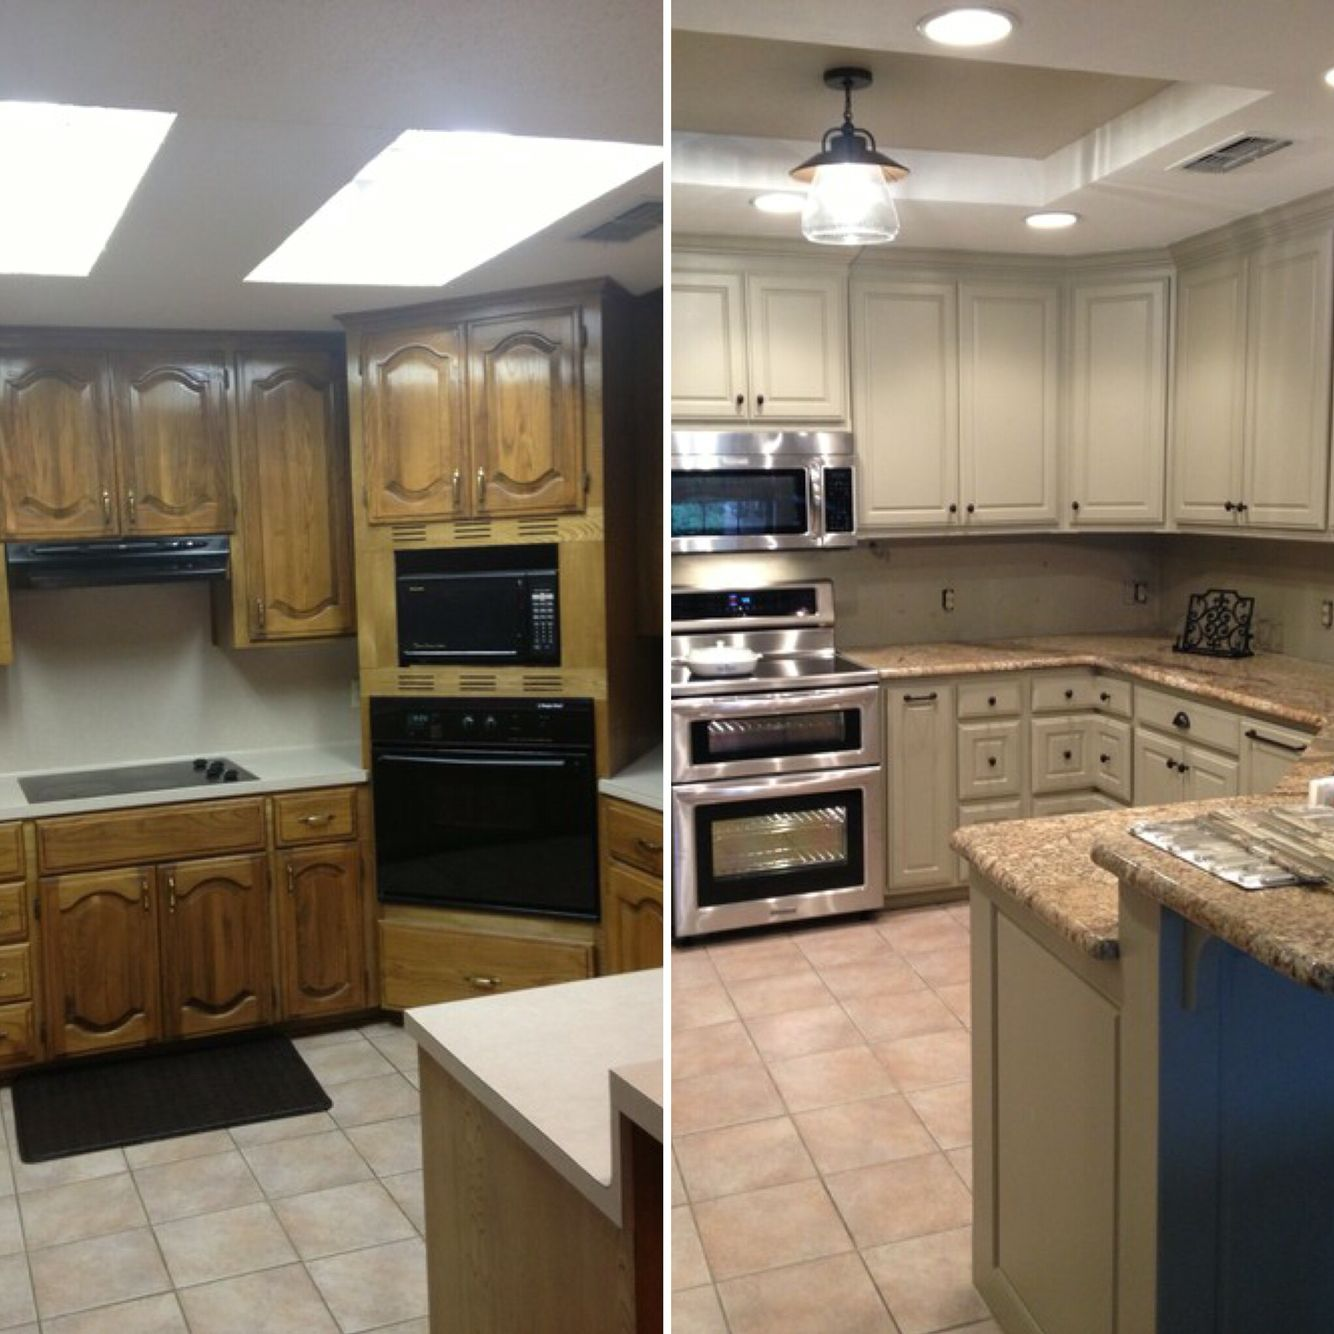 Lighting Kitchen Before and after for updating drop ceiling kitchen fluorescent before and after for updating drop ceiling kitchen fluorescent lighting workwithnaturefo